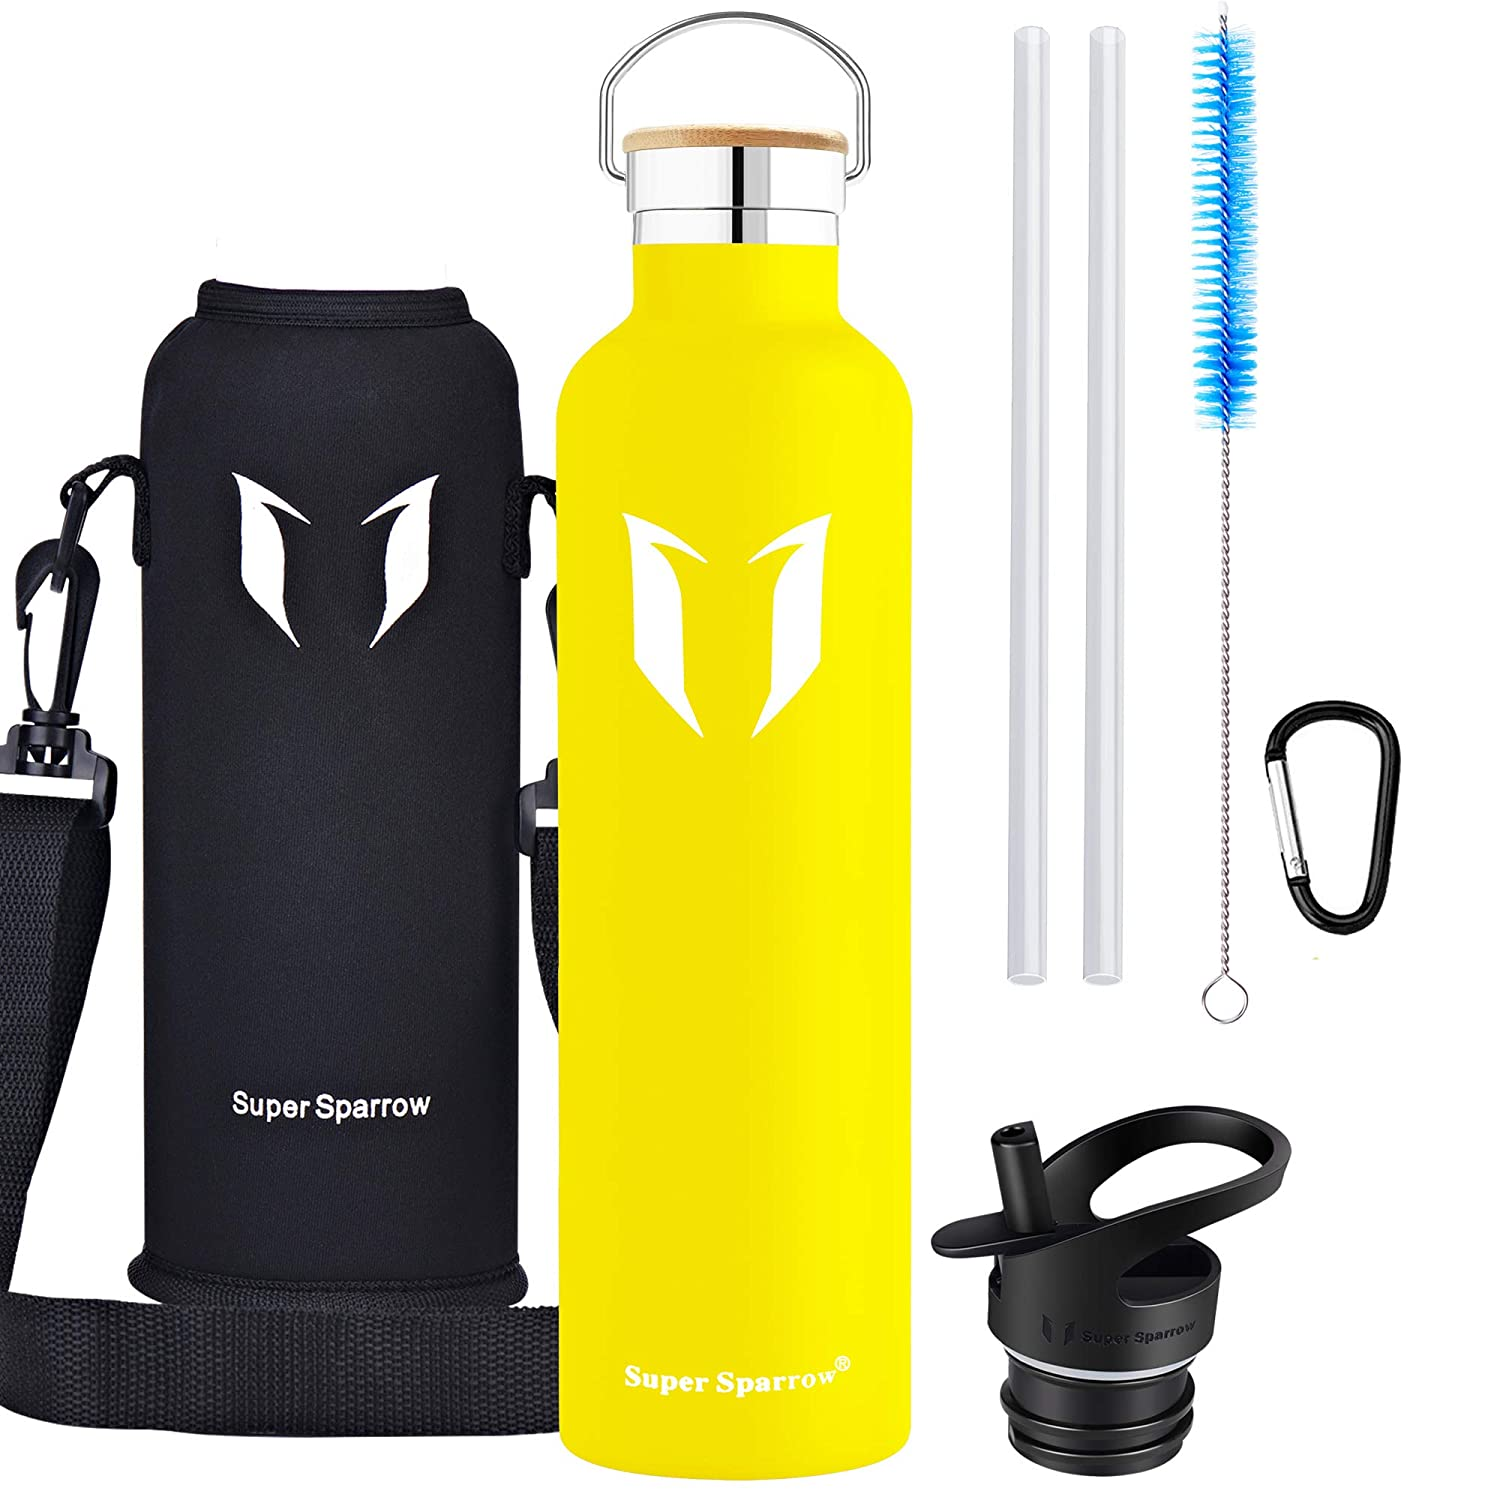 46f3bb5bb8 Super Sparrow Water Bottle -1000ml - Double Wall Vacuum Insulated Stainless  Steel Bottle - Standard Mouth - Leak Proof Sports Bottle - with 2  Exchangeable ...